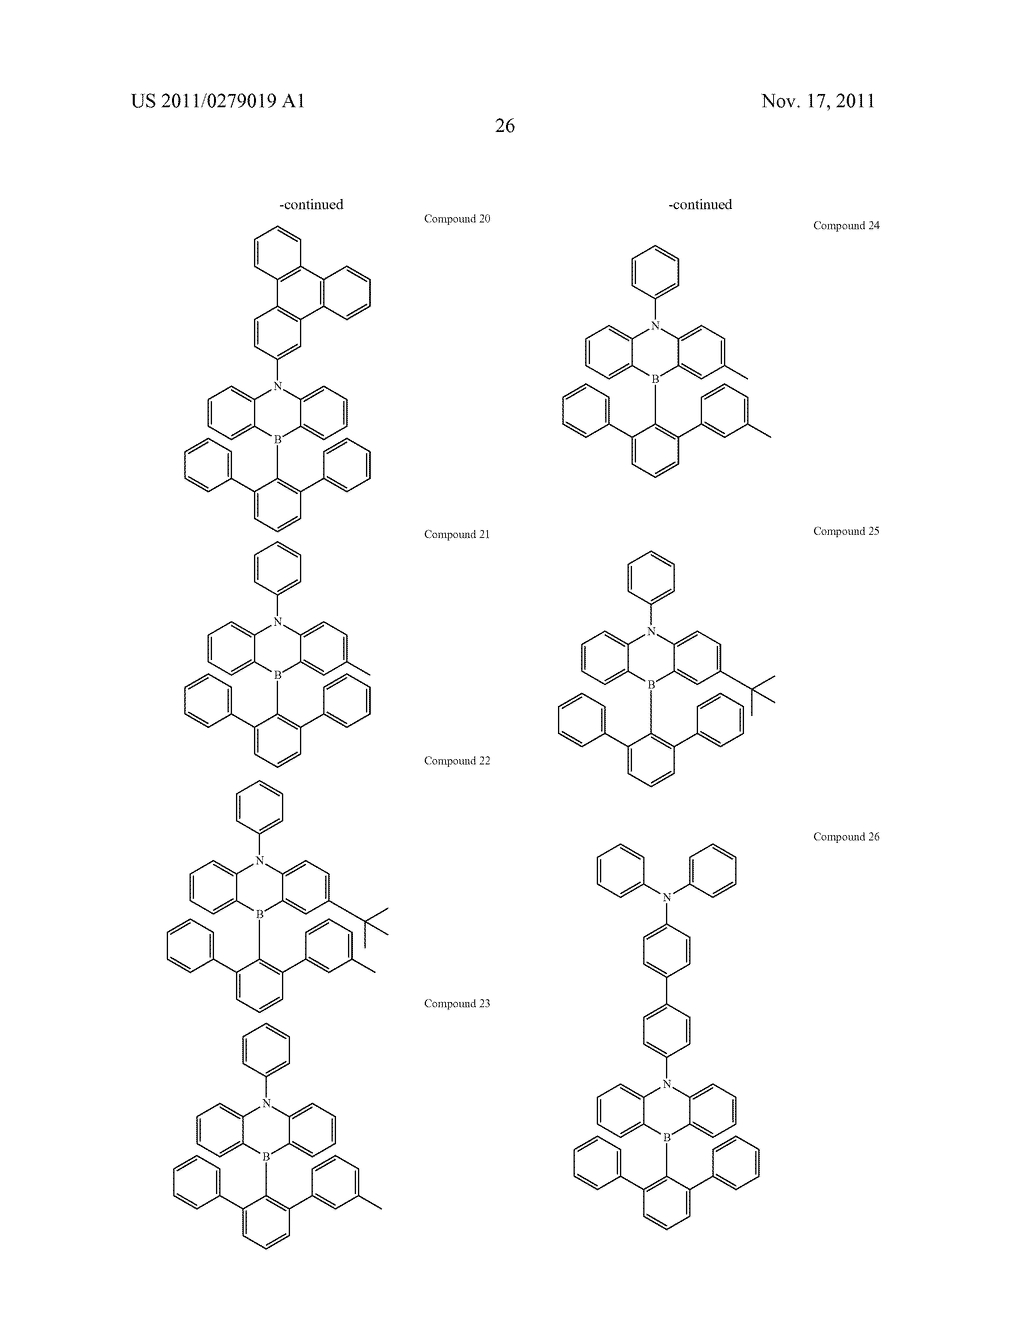 AZABORININE COMPOUNDS AS HOST MATERIALS AND DOPANTS FOR PHOLEDS - diagram, schematic, and image 33